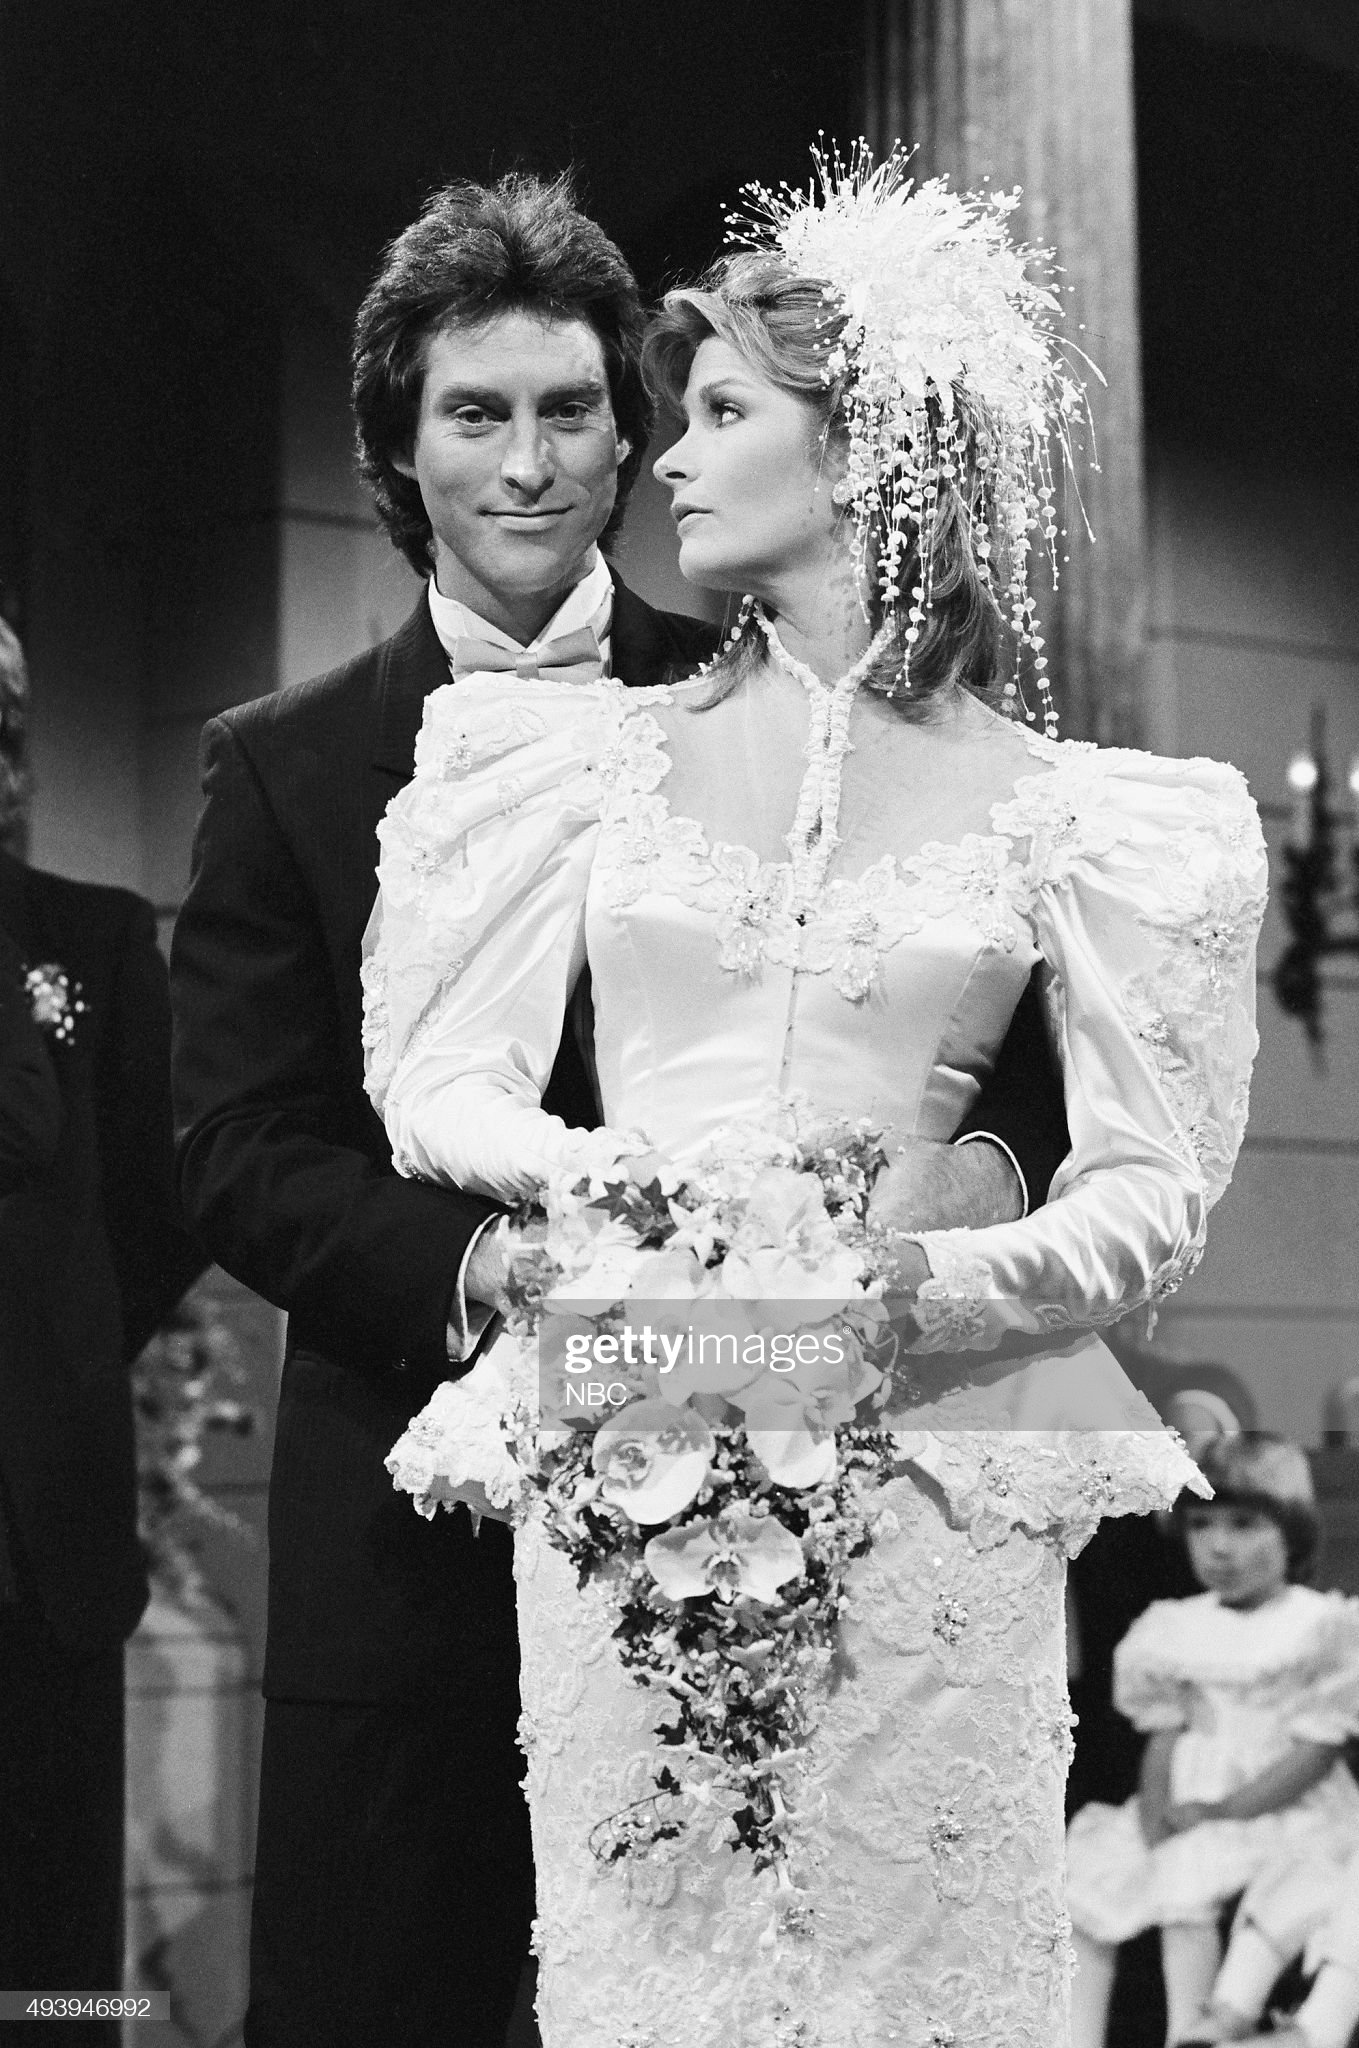 marlena-evans-roman-brady-wedding-pictured-drake-hogestyn-as-roman-picture-id493946992